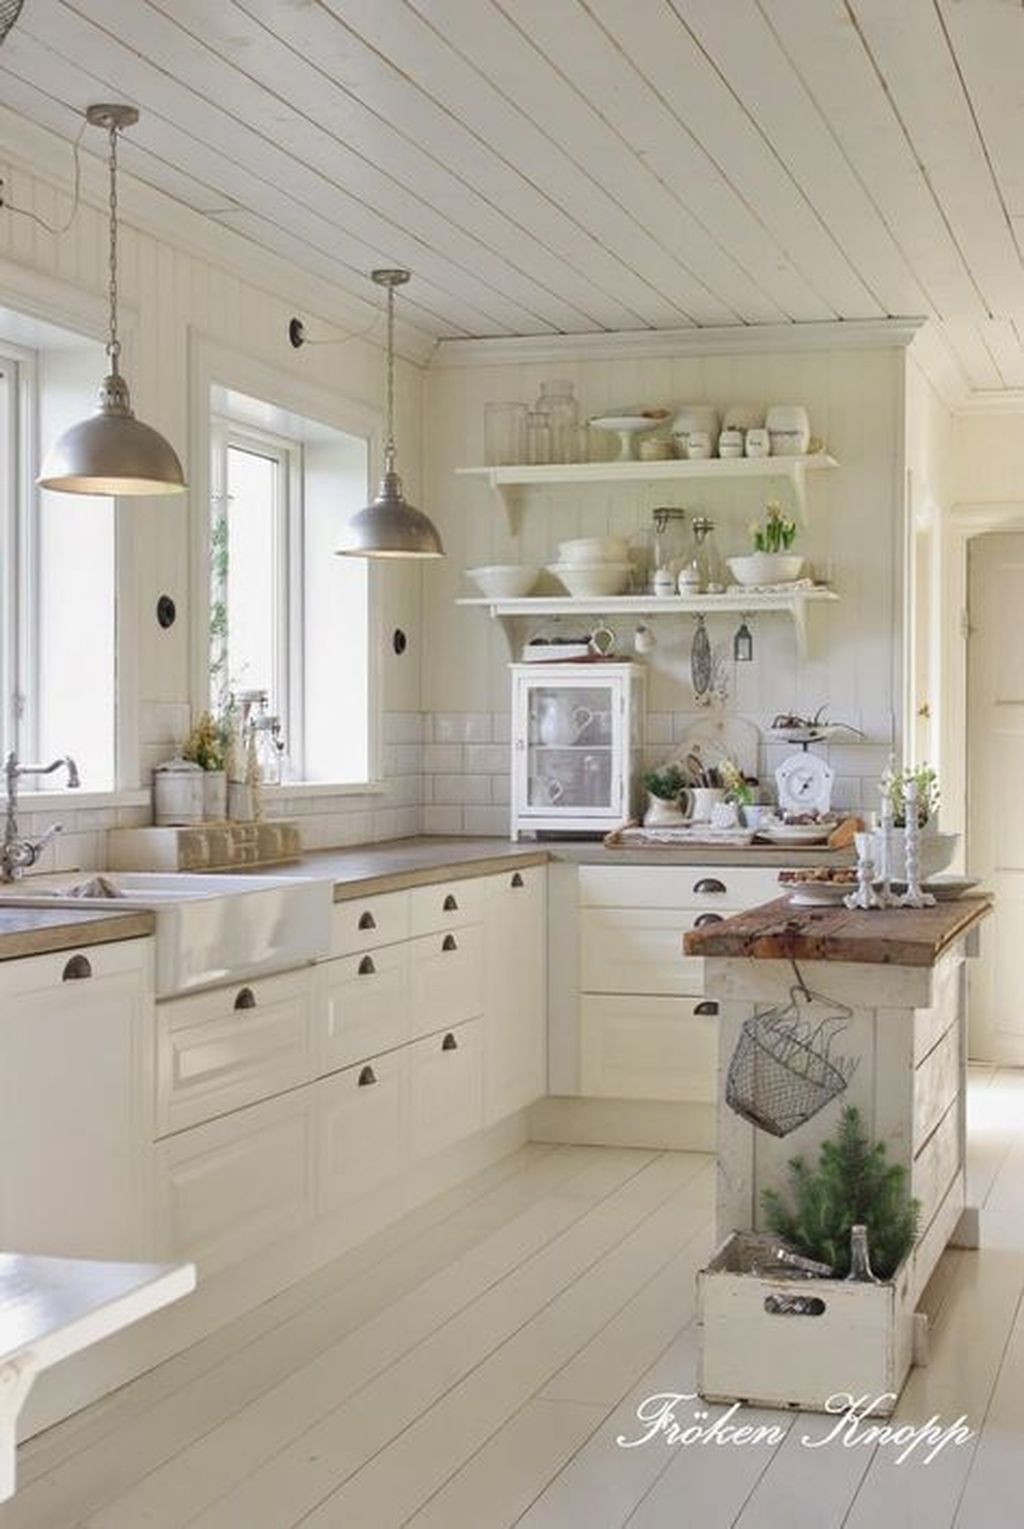 french country kitchens kitchen goods store pin by melinda hogan on decor items farmhouse cool 40 style decoration ideas more at http 88homedecor